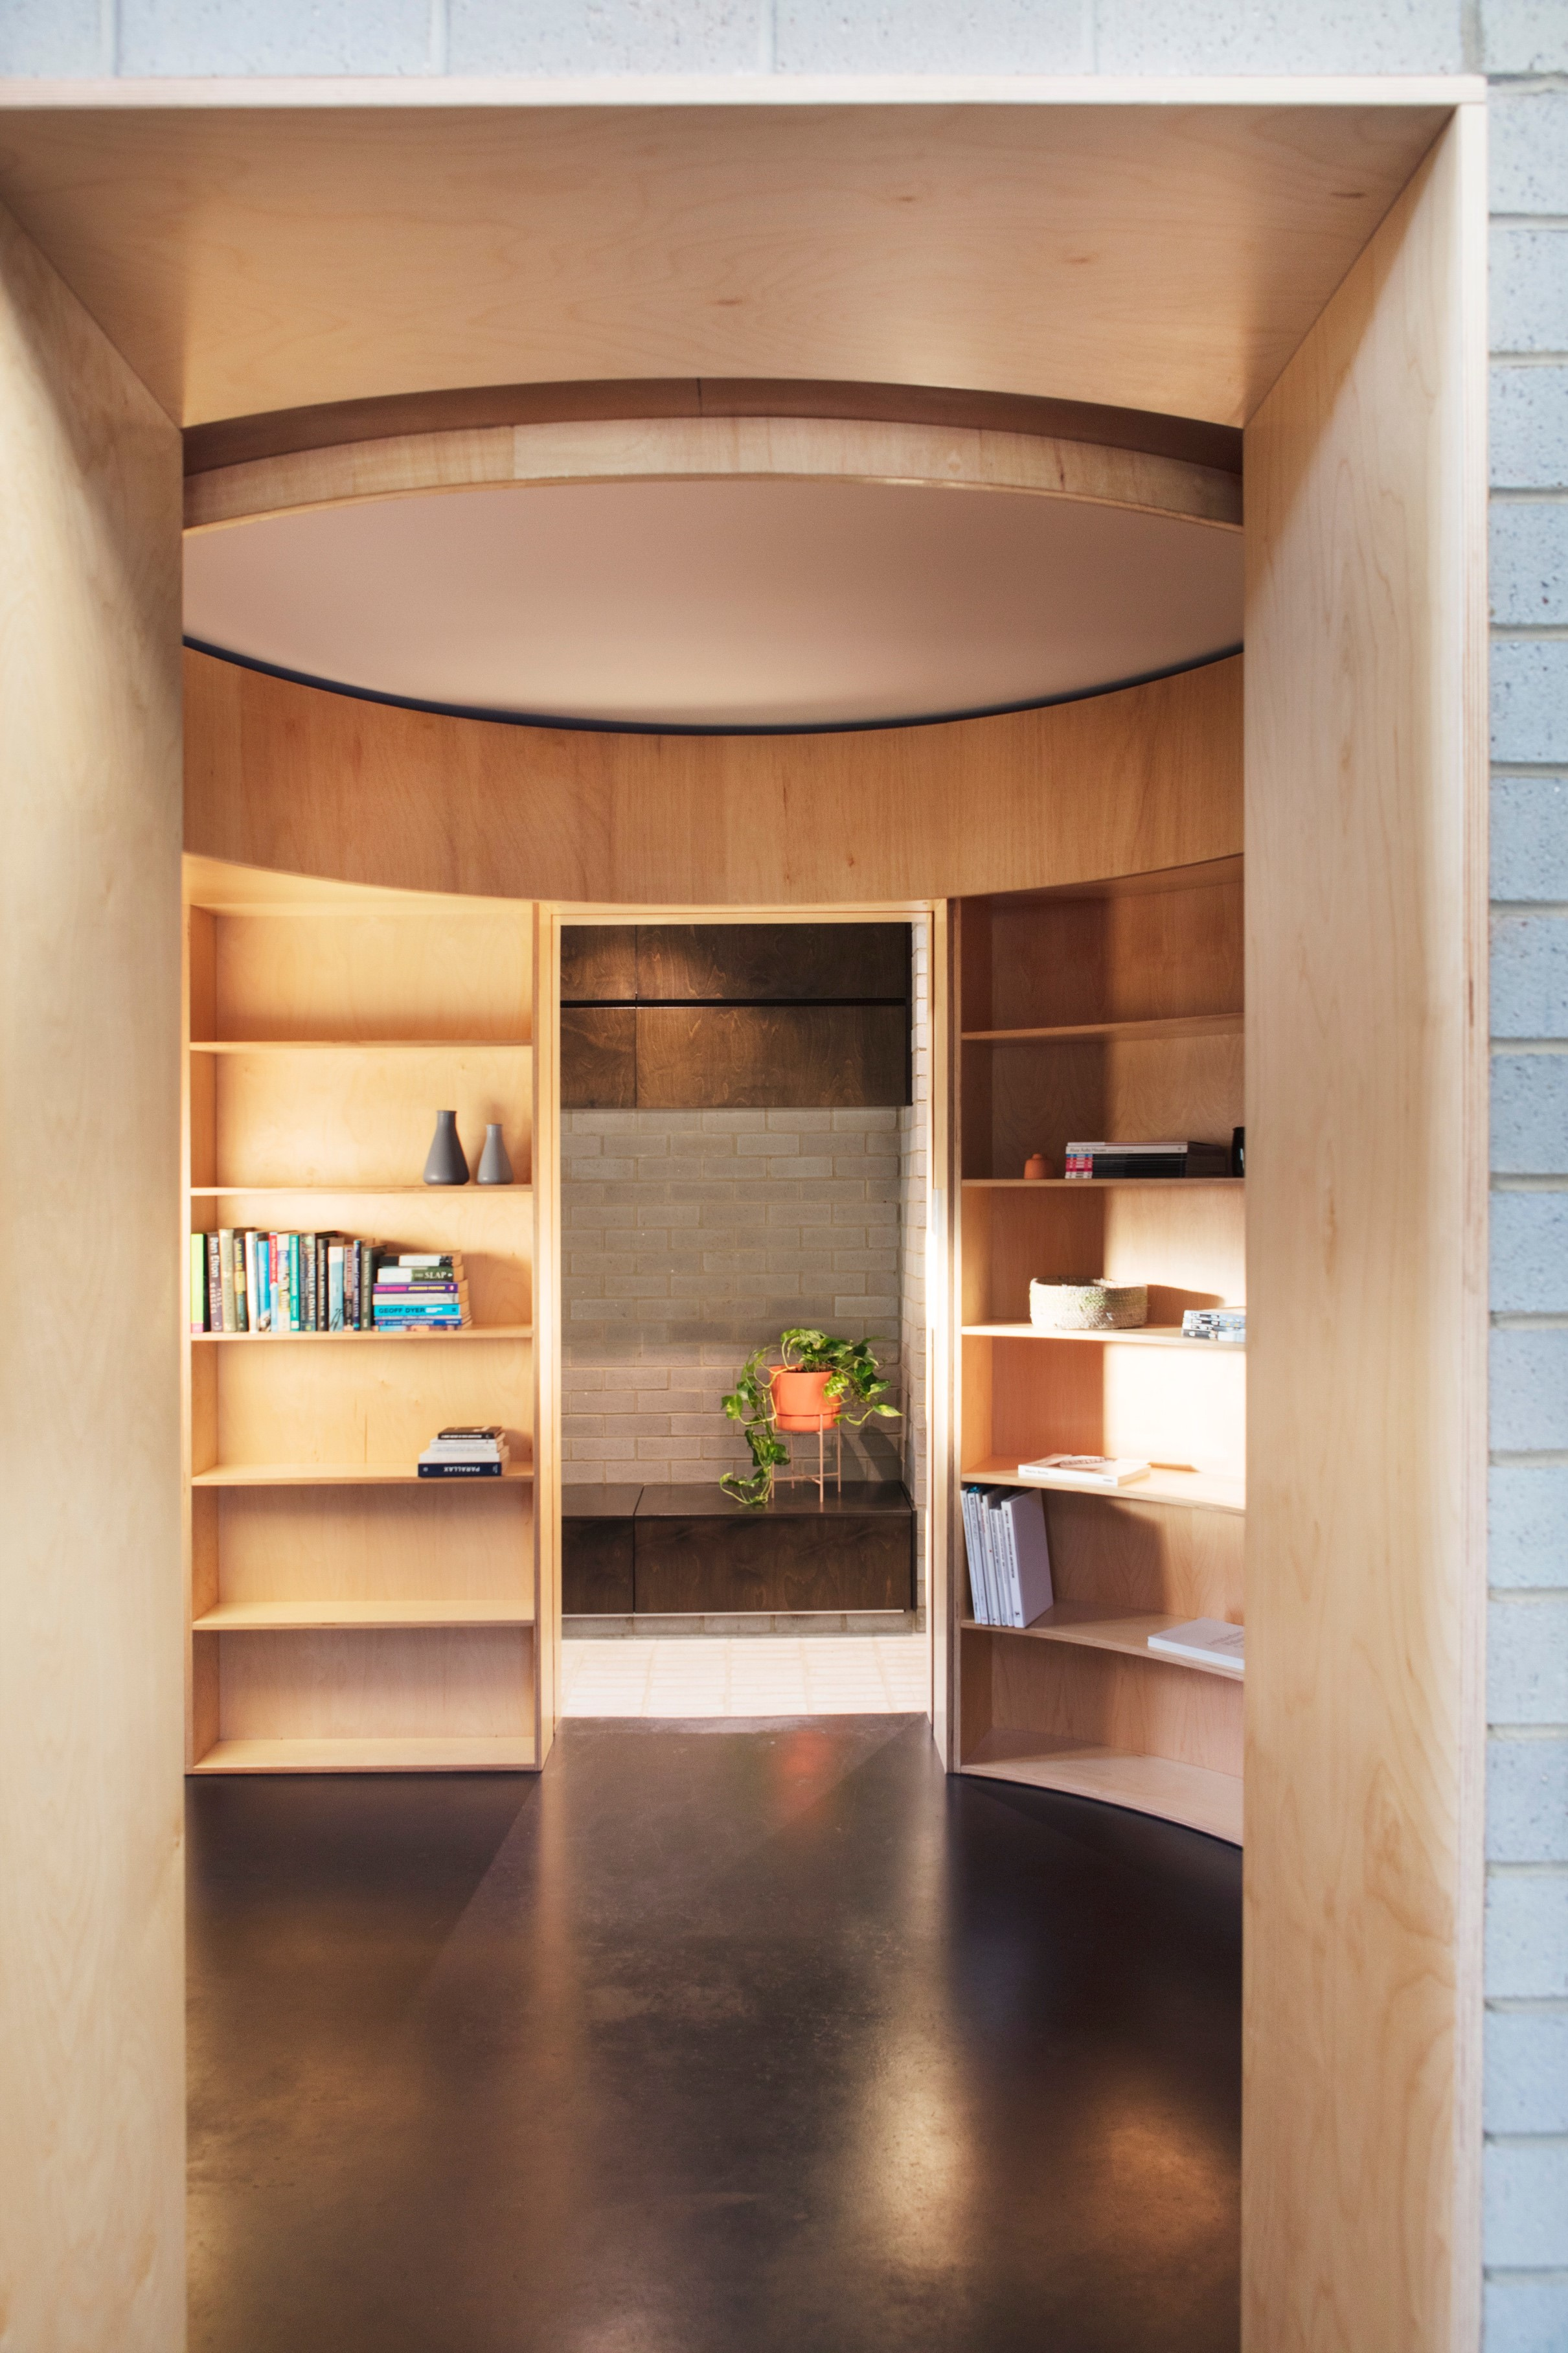 This 'barefoot Space' Has A Raw Casualness That Suggests The Dweller's Relaxed Temperament.